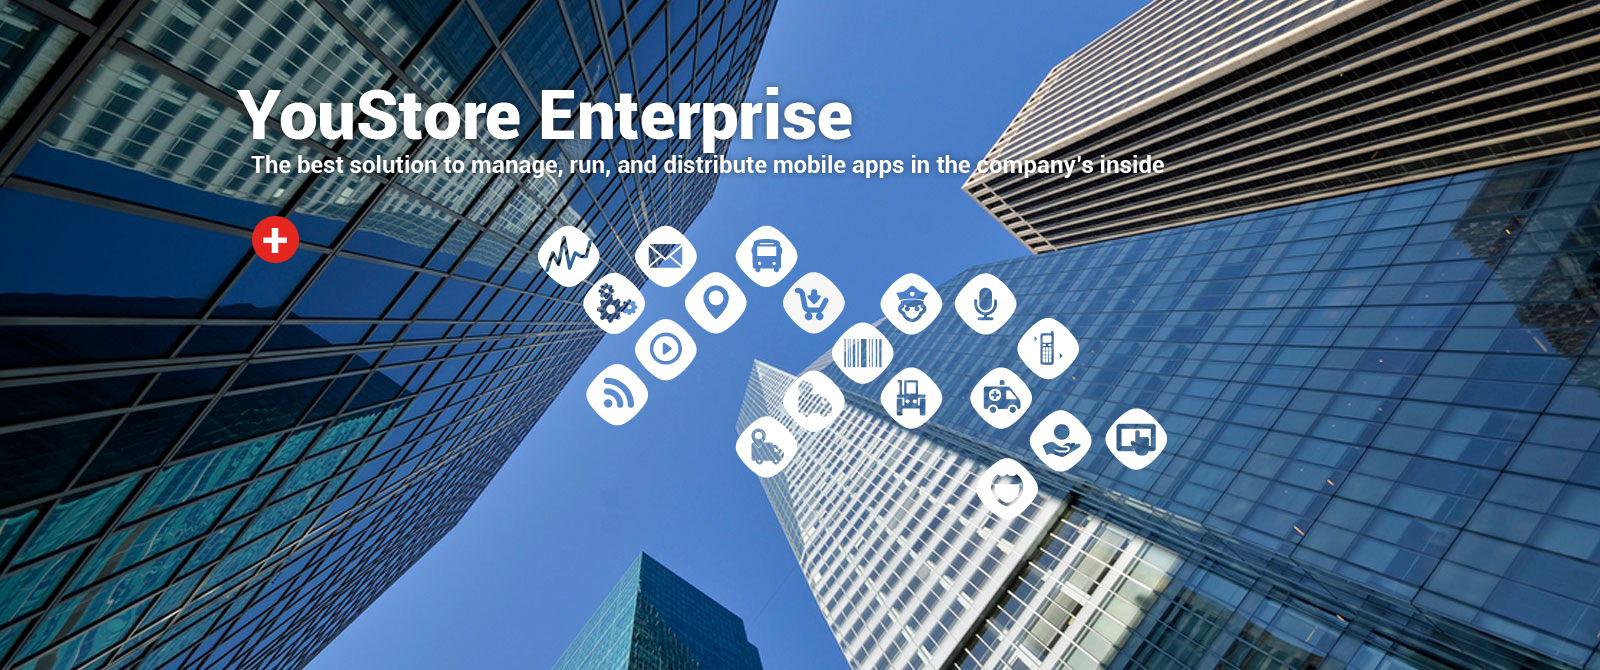 youstore_enterprise